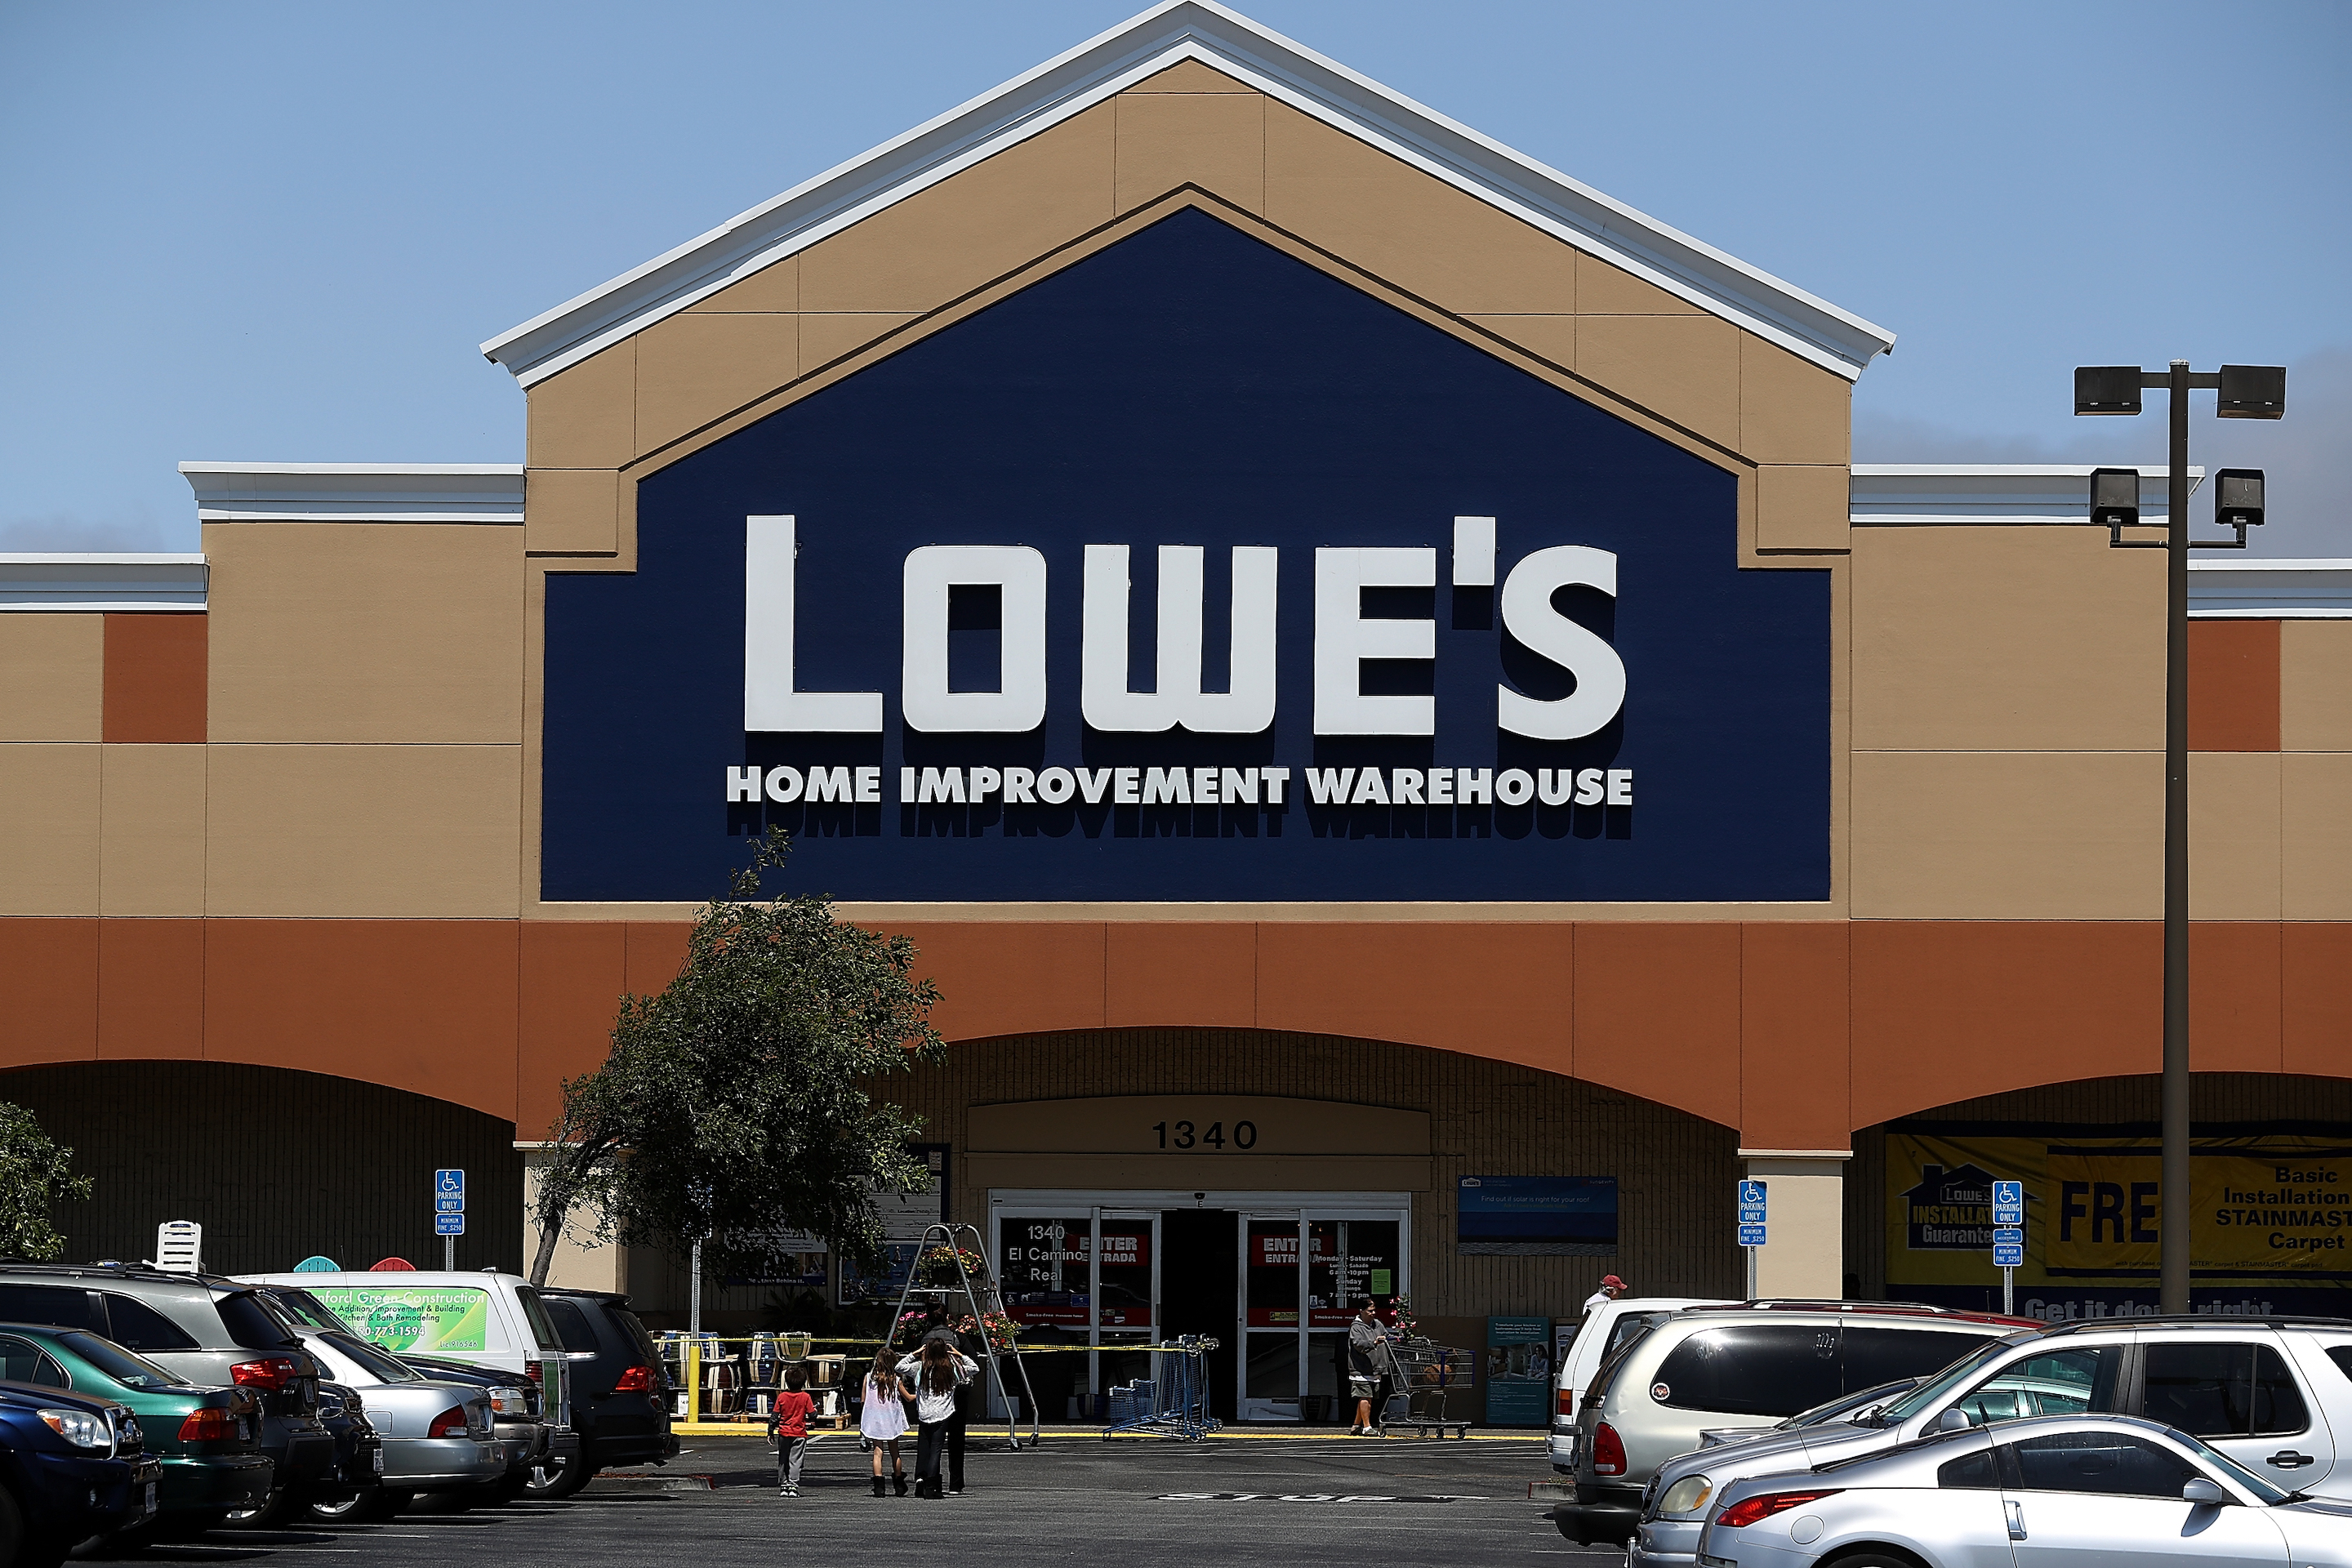 Lowe's posted strong second-quarter profits, boosting optimism for the flagging home-improvement chain's future.